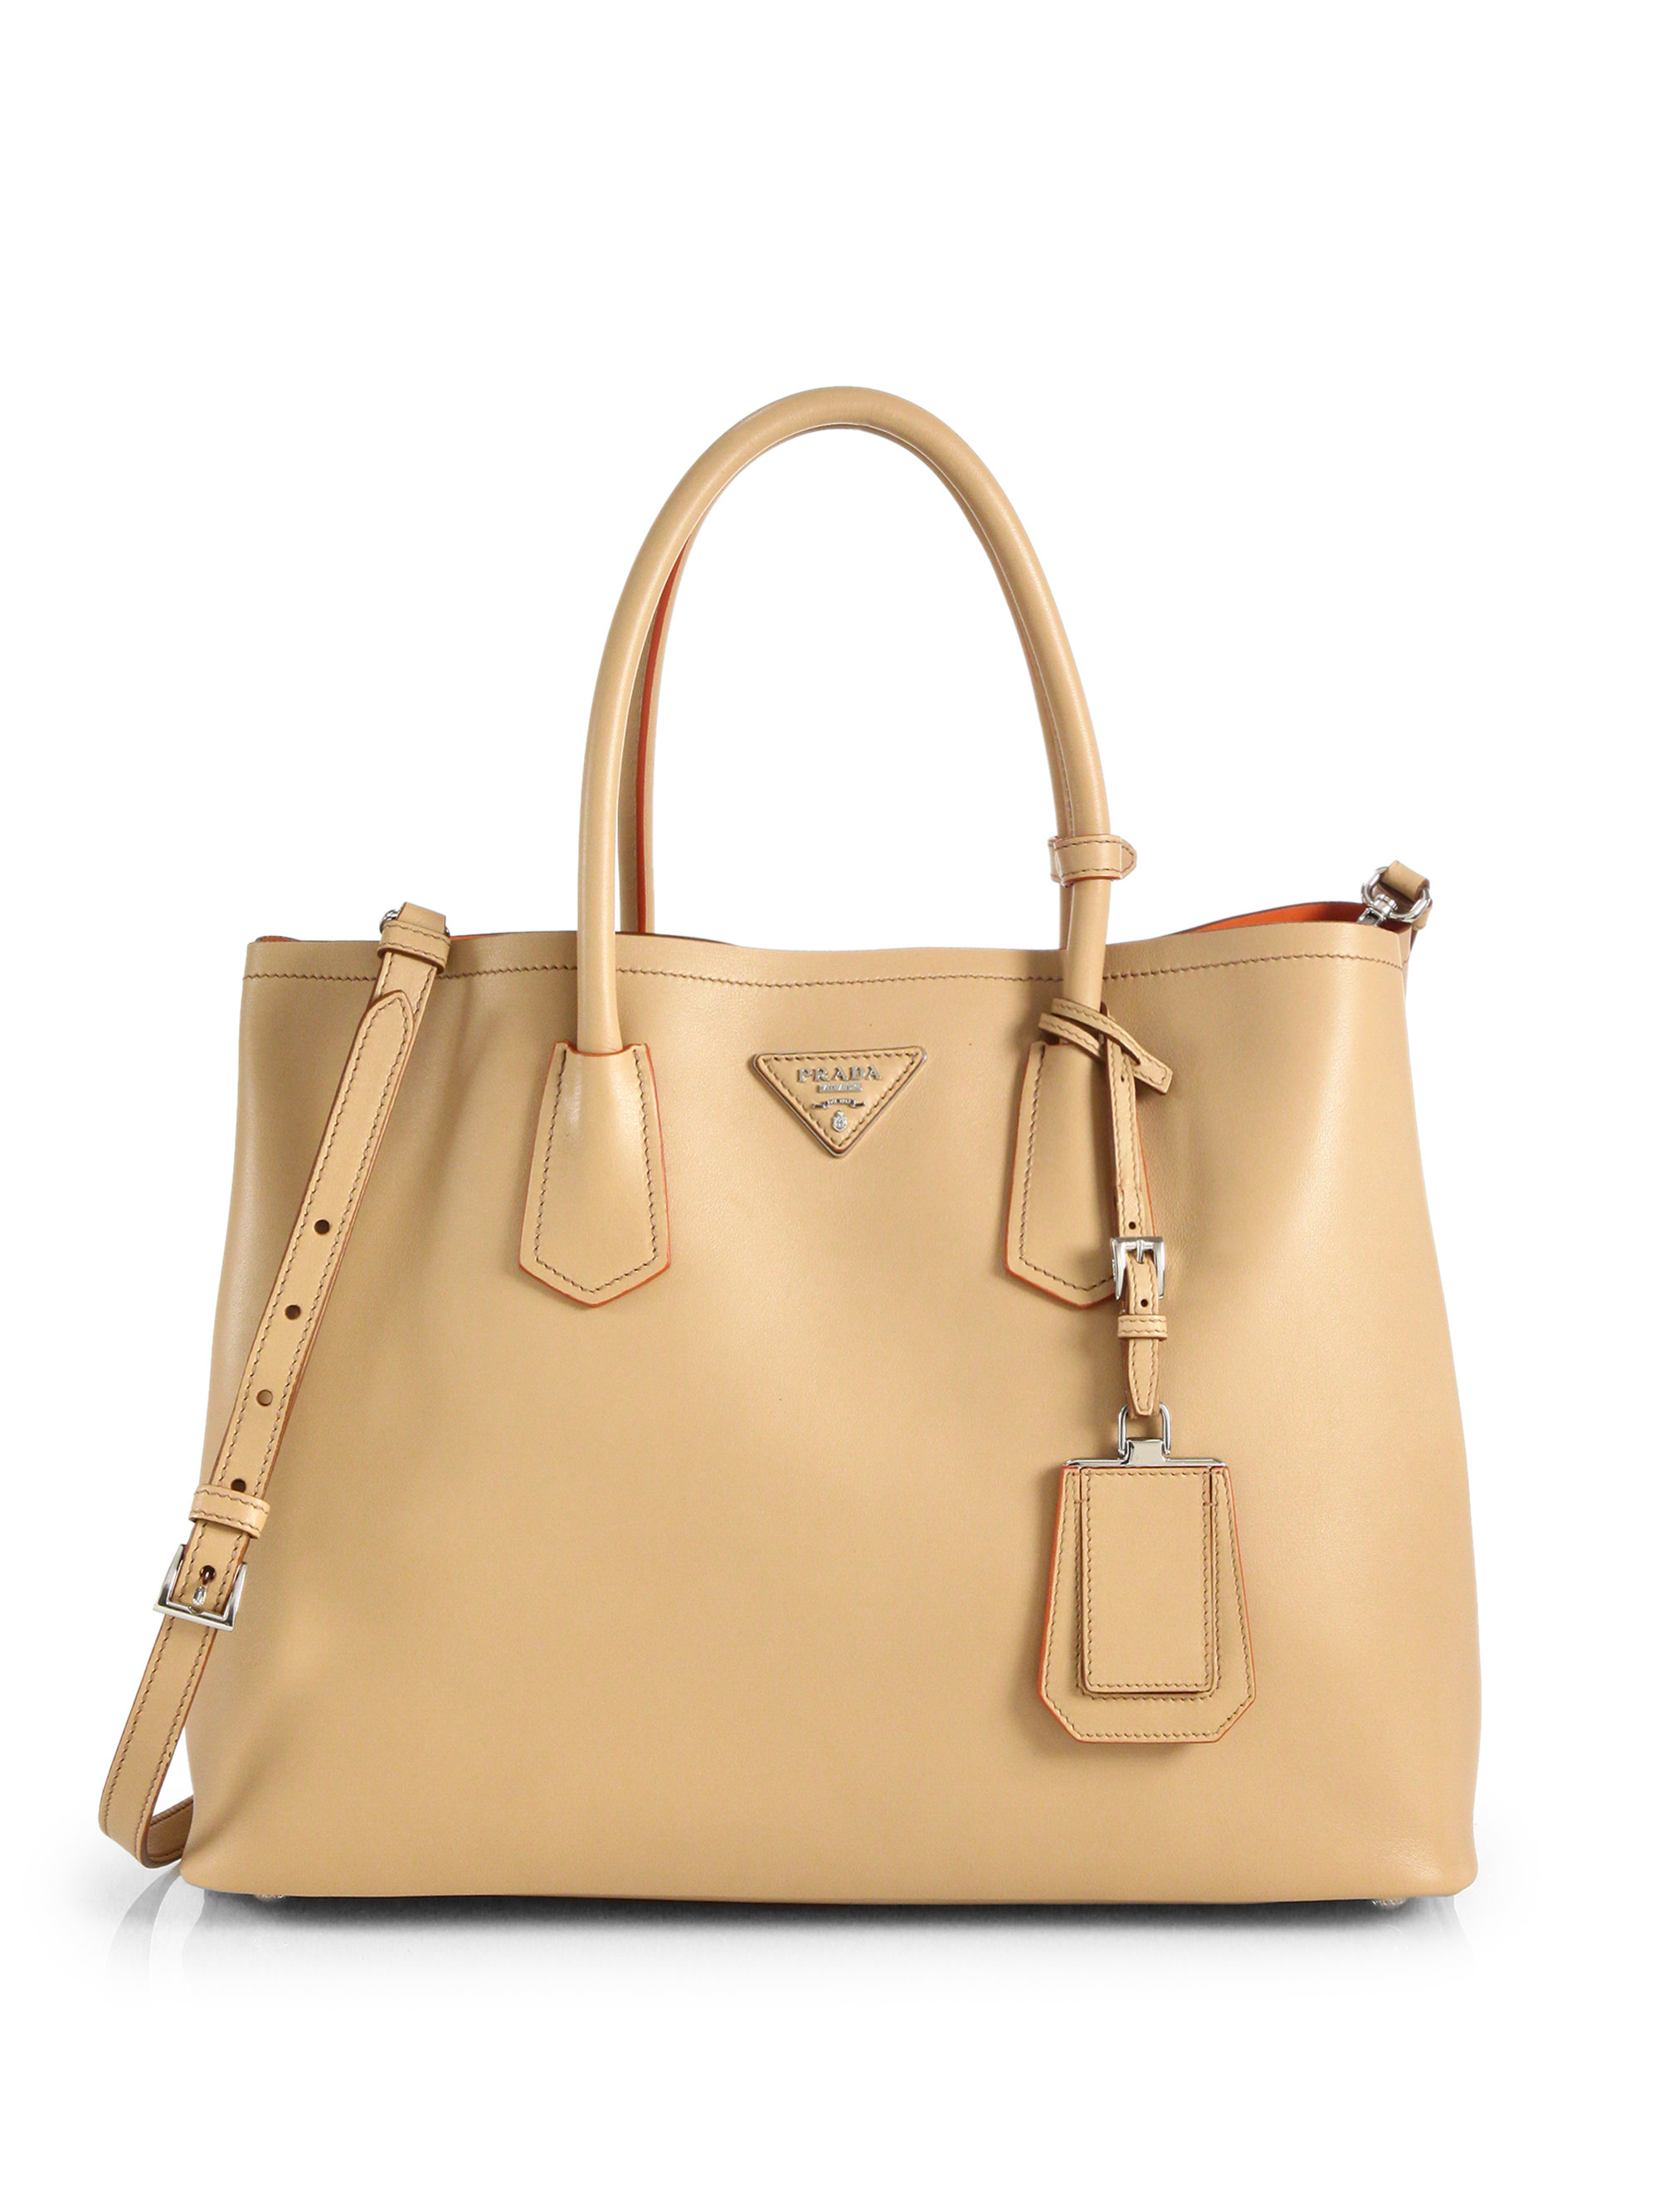 cheap prada wallets - Prada City Calf Medium Double Bag in Beige (NOCCIOLA-NUDE) | Lyst